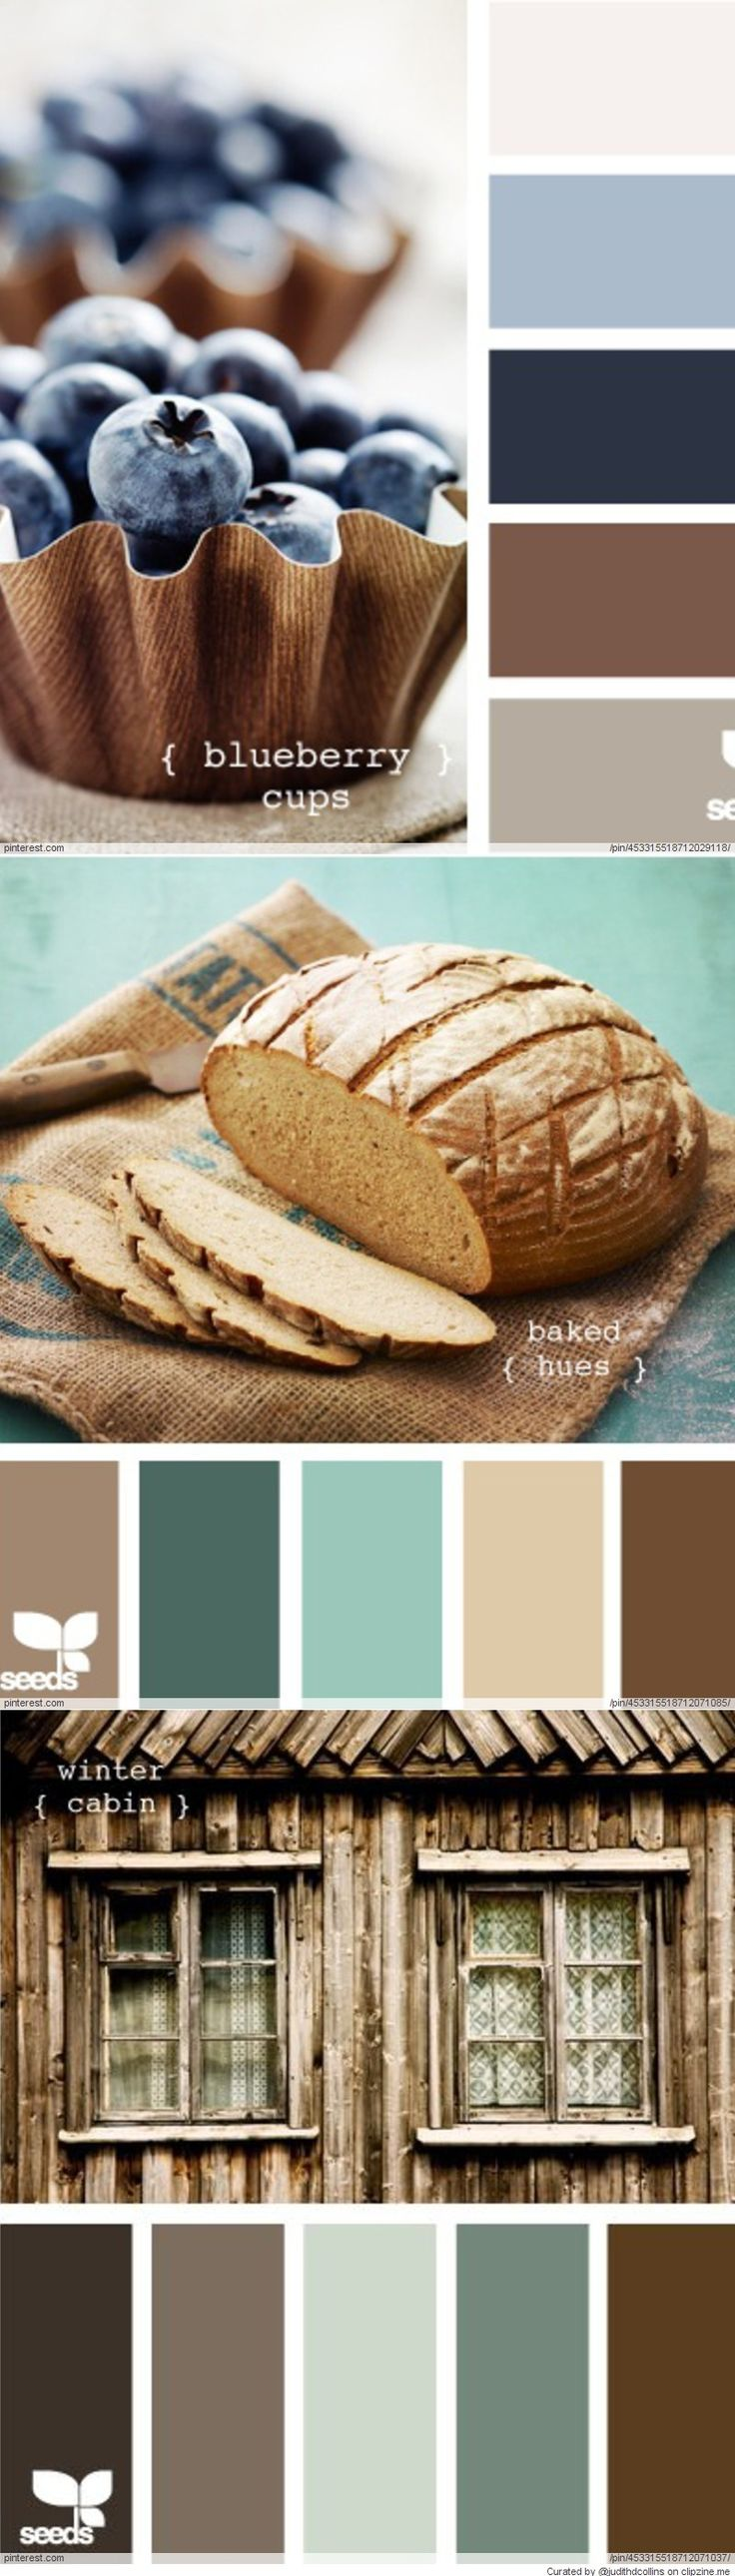 Love the bread color way - substitute the dull teal for bright accent pops of turquoise Kitchen/breakfast?                                                                                                                                                      More